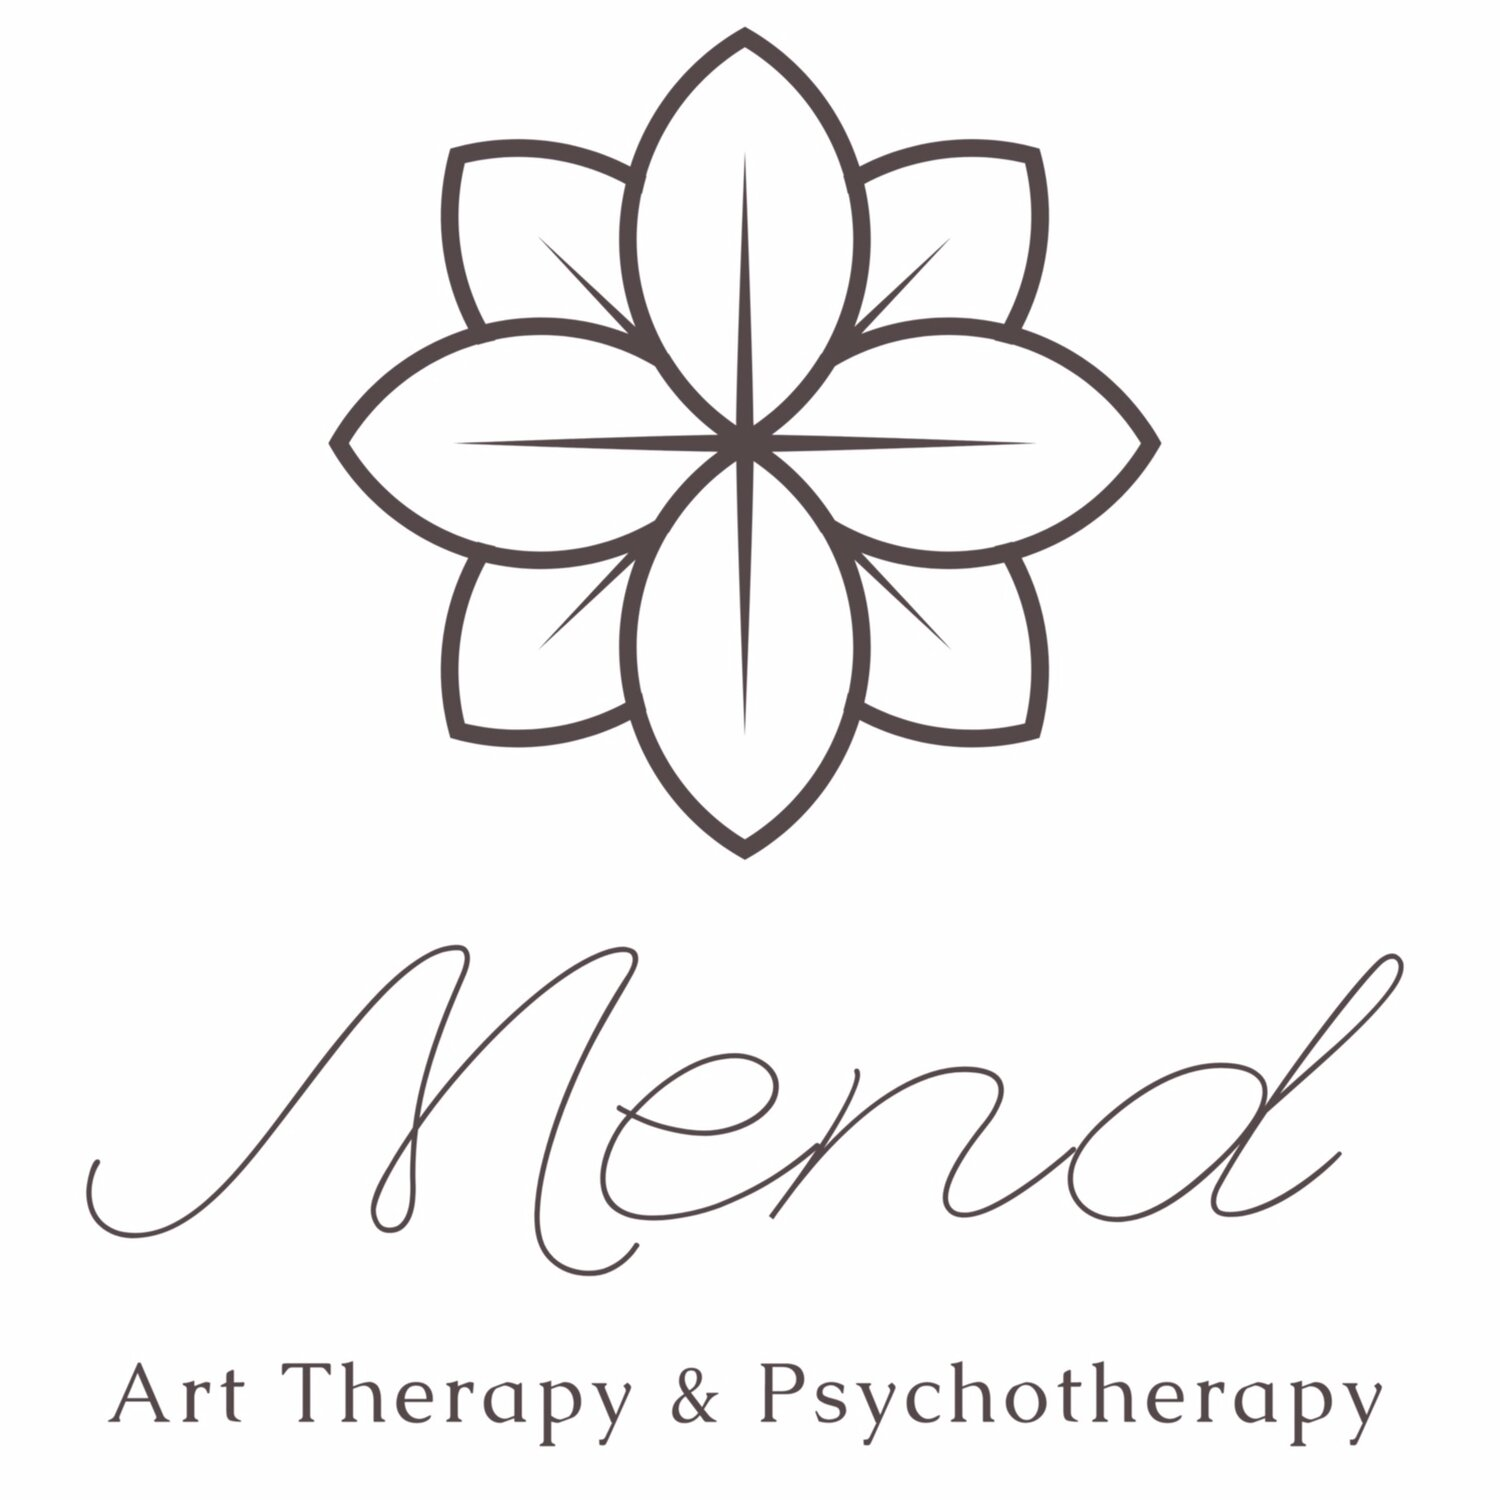 Mend Art Therapy & Psychotherapy